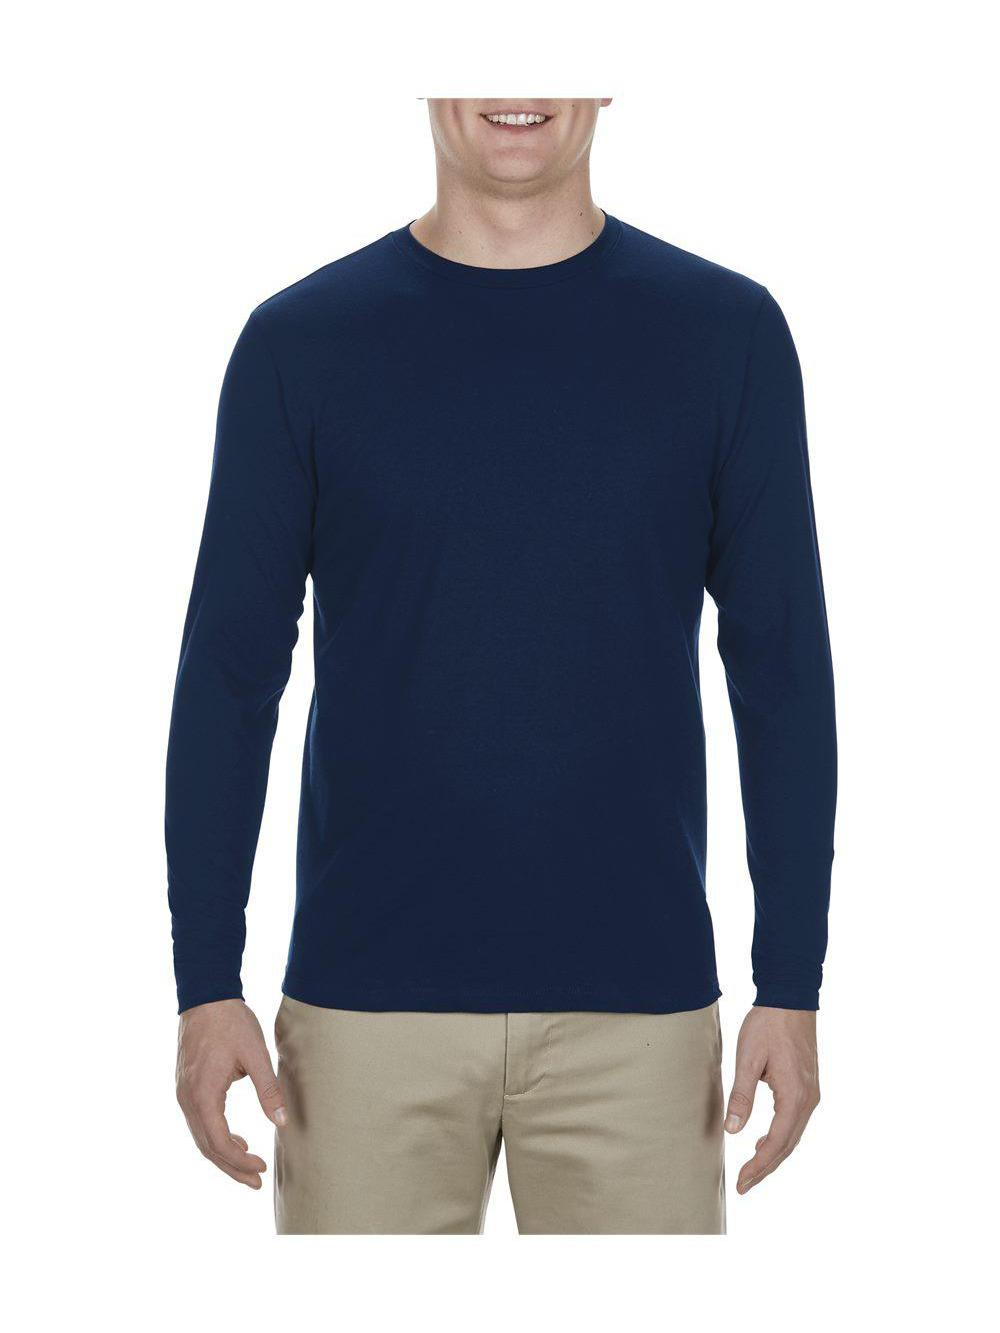 ALSTYLE-Ultimate-Long-Sleeve-T-Shirt-5304 thumbnail 13